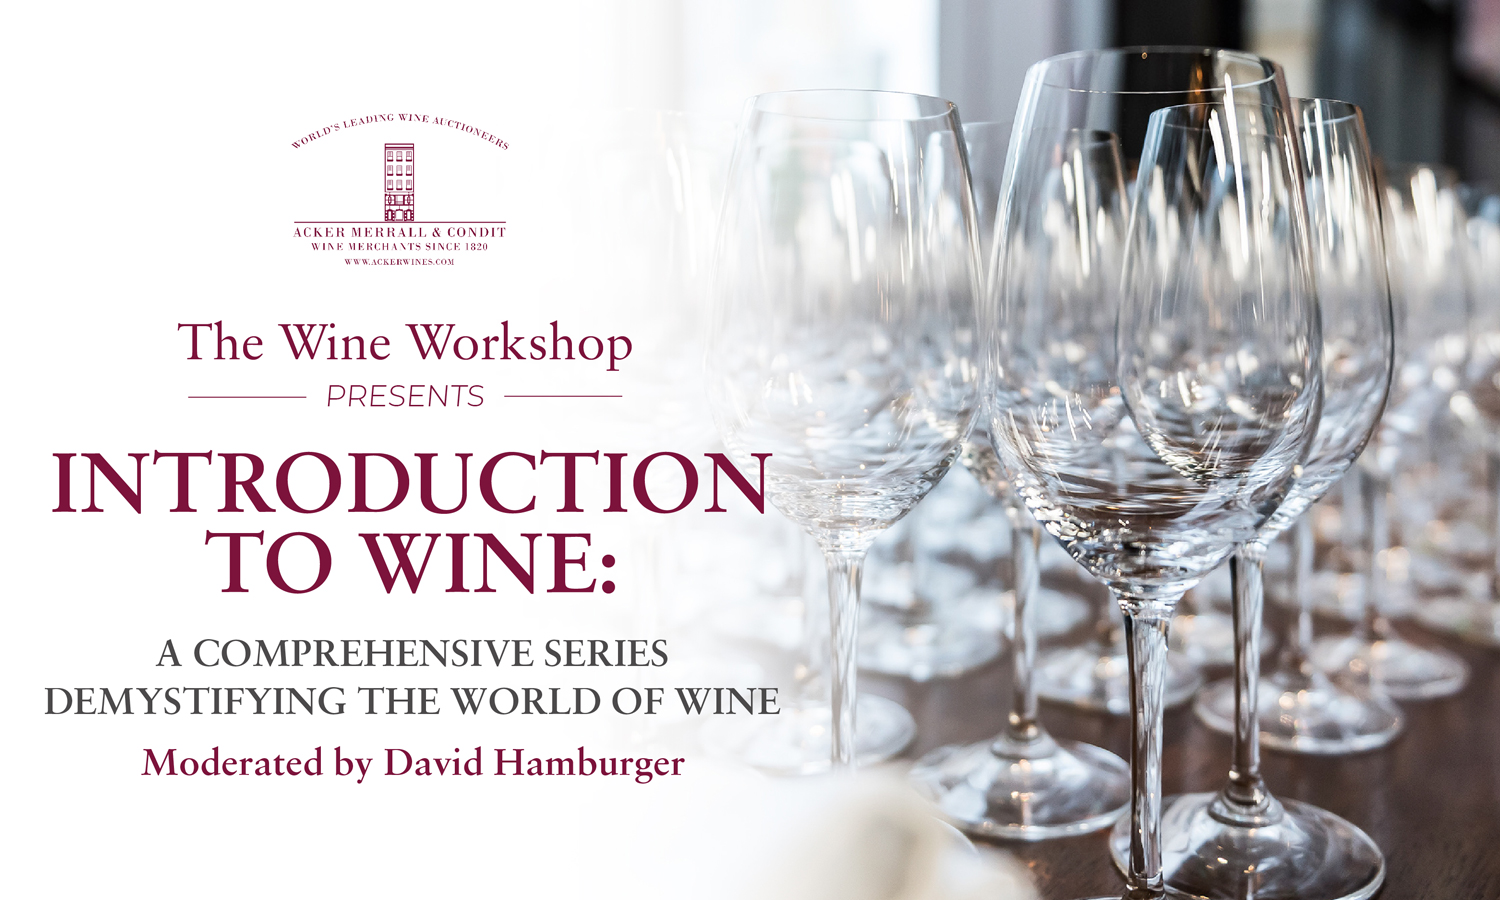 Introduction to Wine:A Comprehensive Series Demystifying the World of Wine